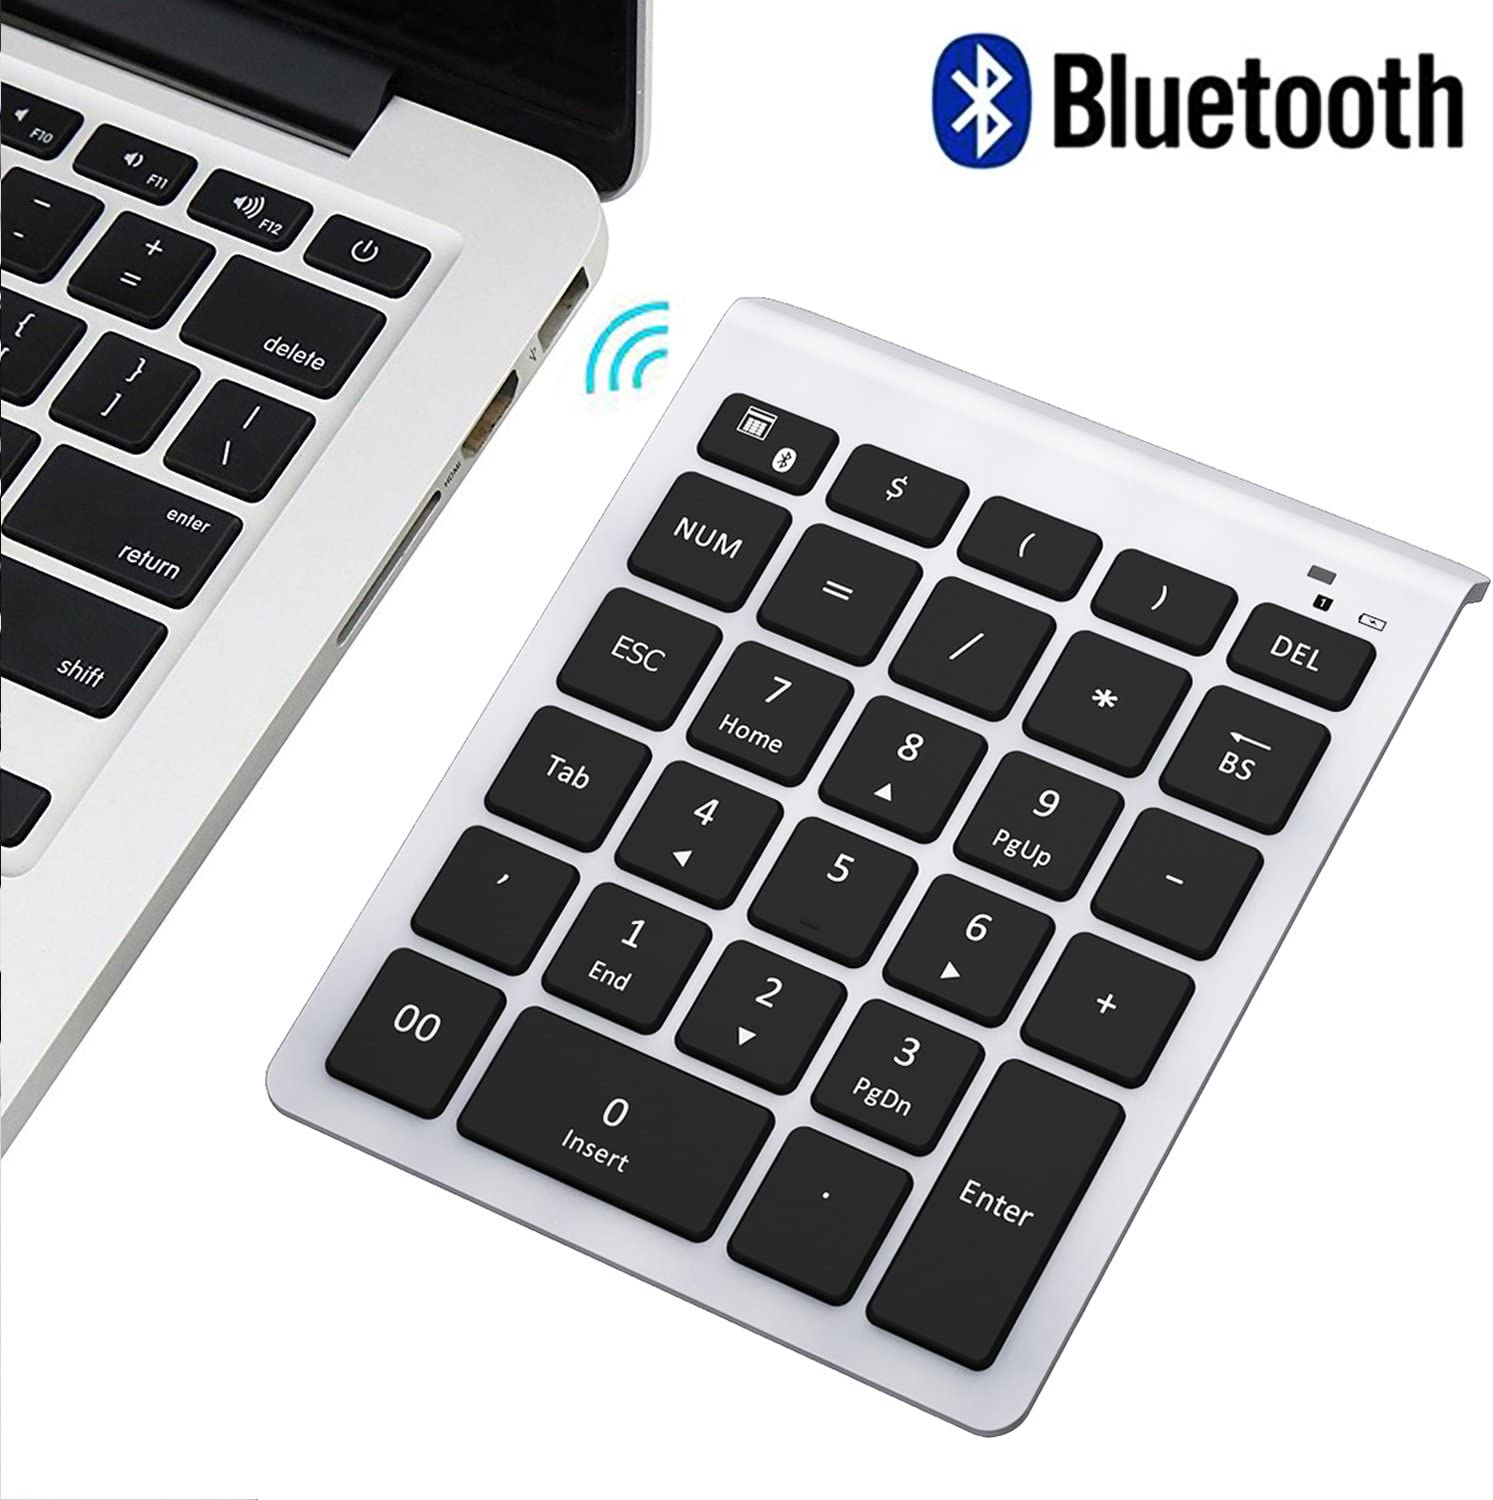 Lekvey Bluetooth Number Pad, Portable Wireless Bluetooth 28-Key Numeric Keypad Keyboard Extensions for Financial Accounting Data Entry for Laptop, Surface Pro, Tablets, Windows and More - Silver